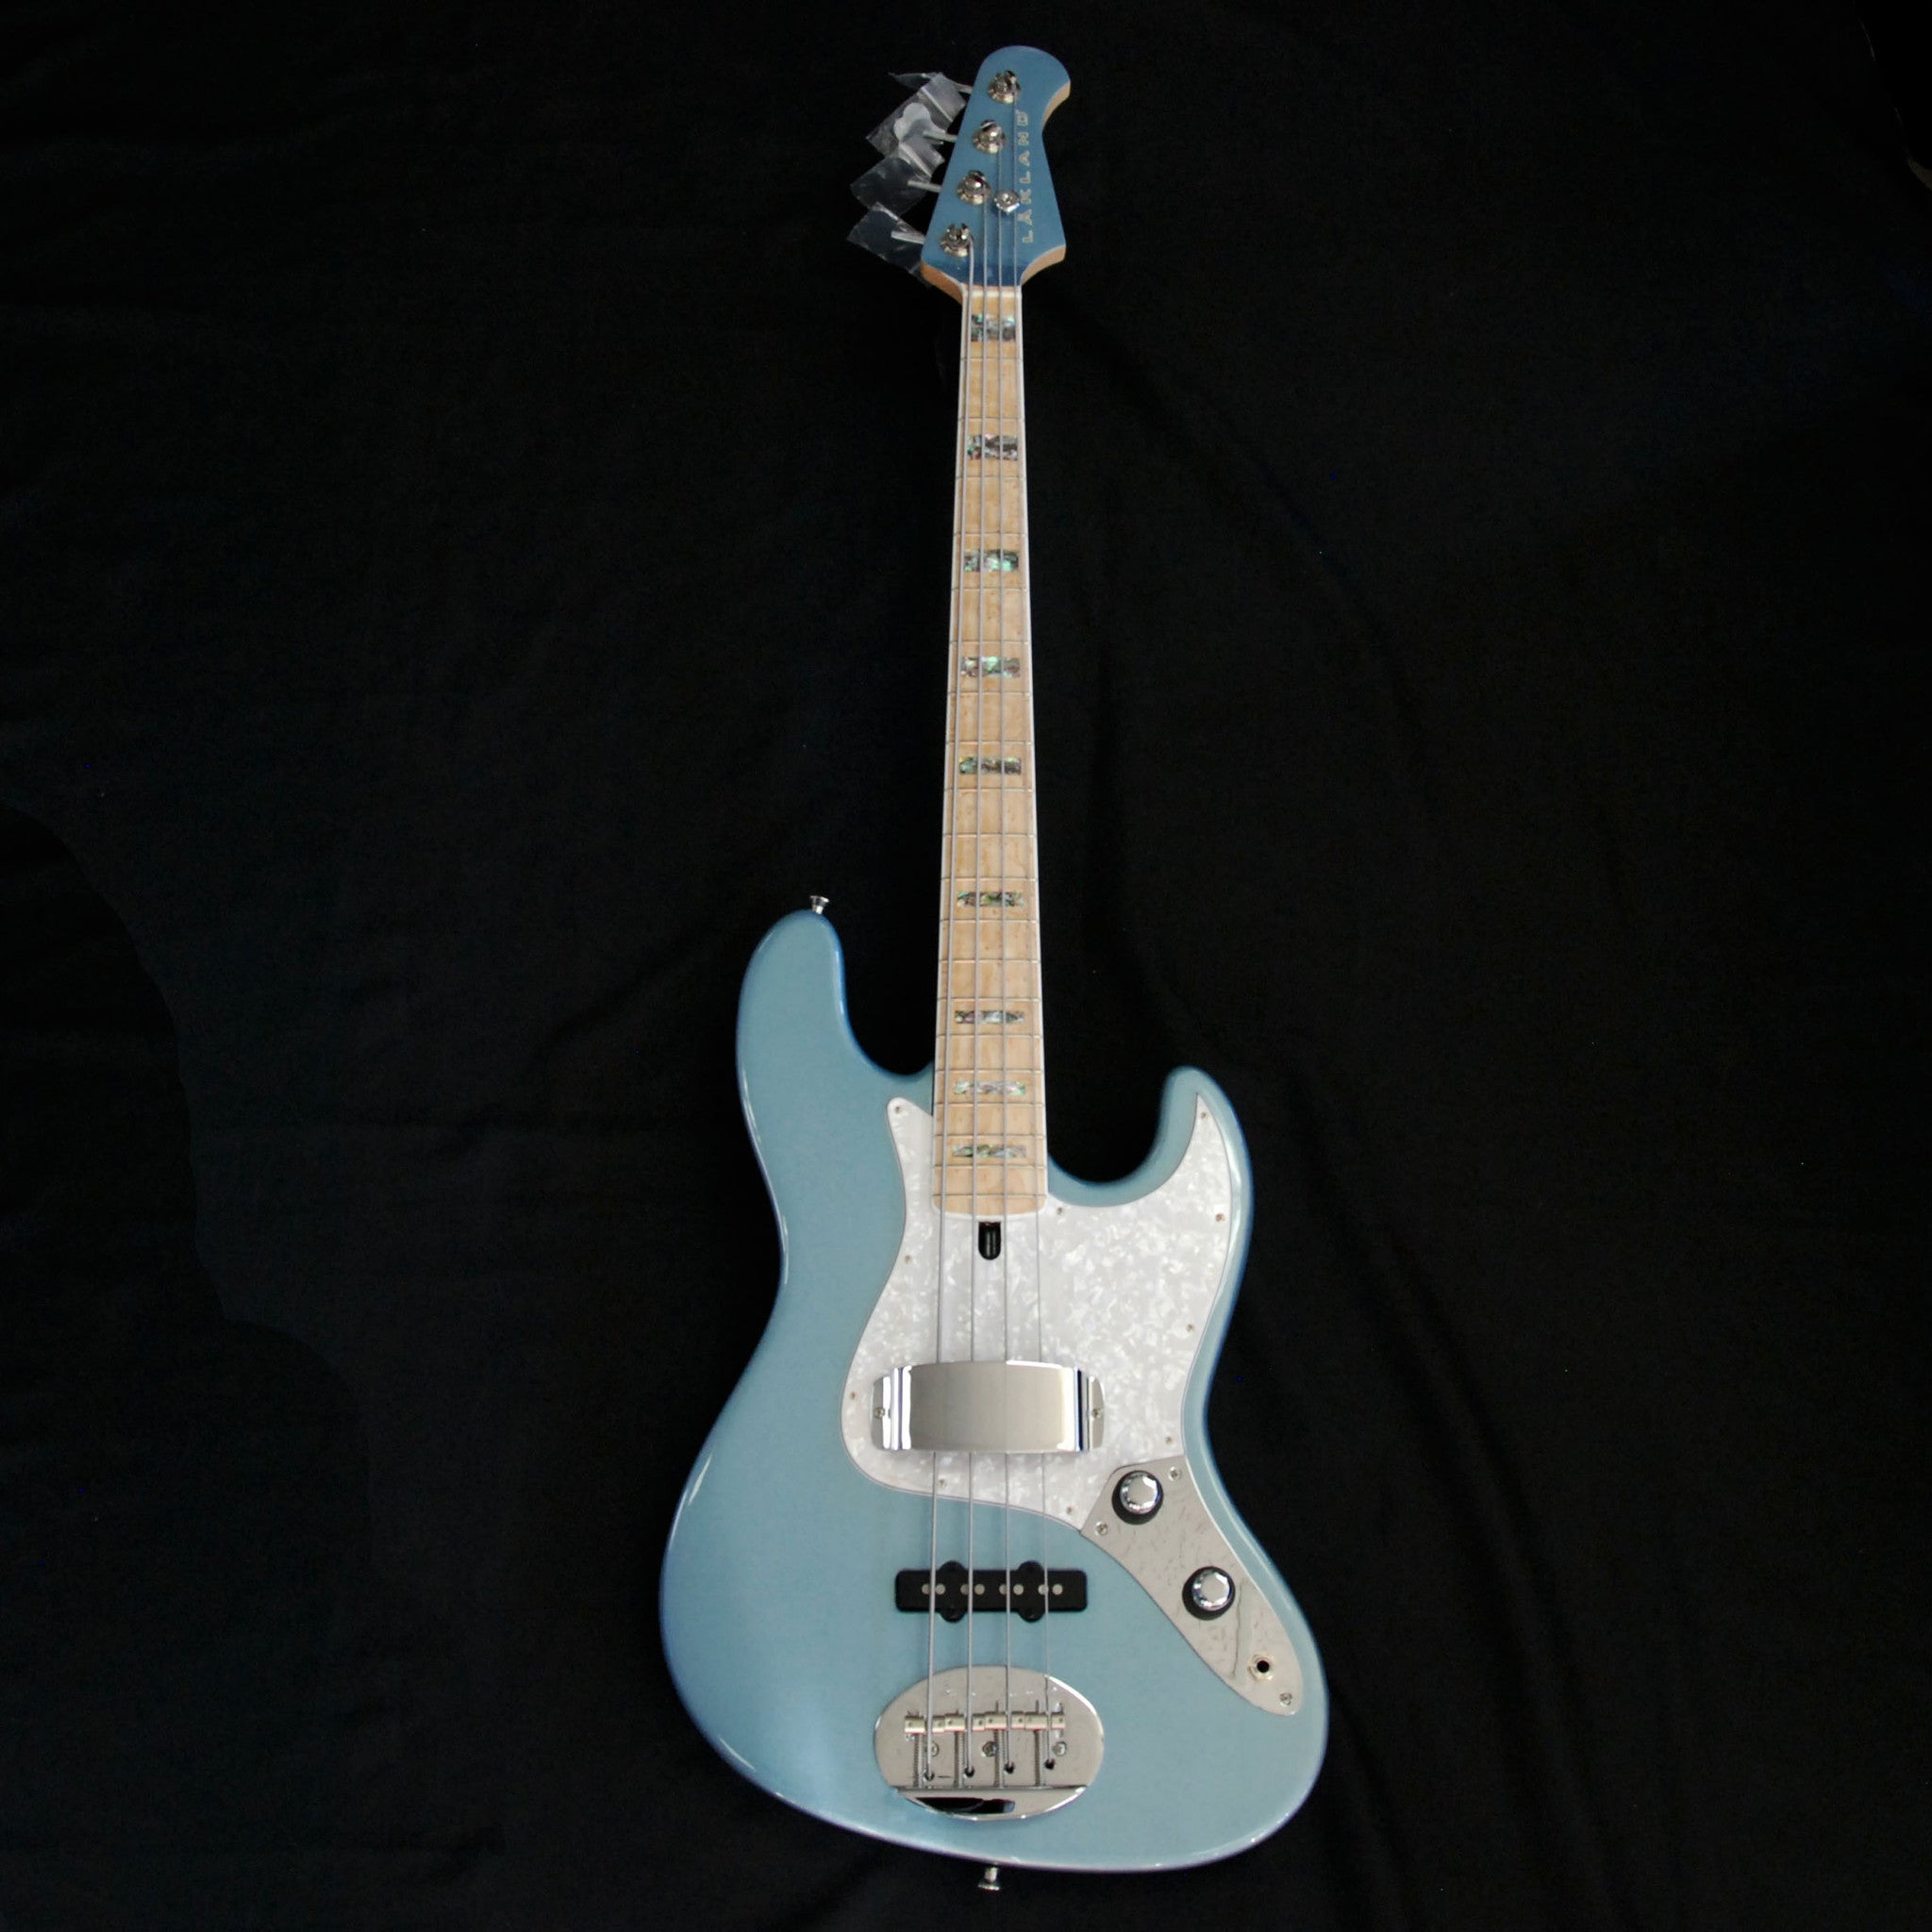 Shop online for Lakland USA Classic Series 44-60 Ice Blue Metallic 4 String Electric Jazz Bass Guitar today. Now available for purchase from Midlothian Music of Orland Park, Illinois, USA